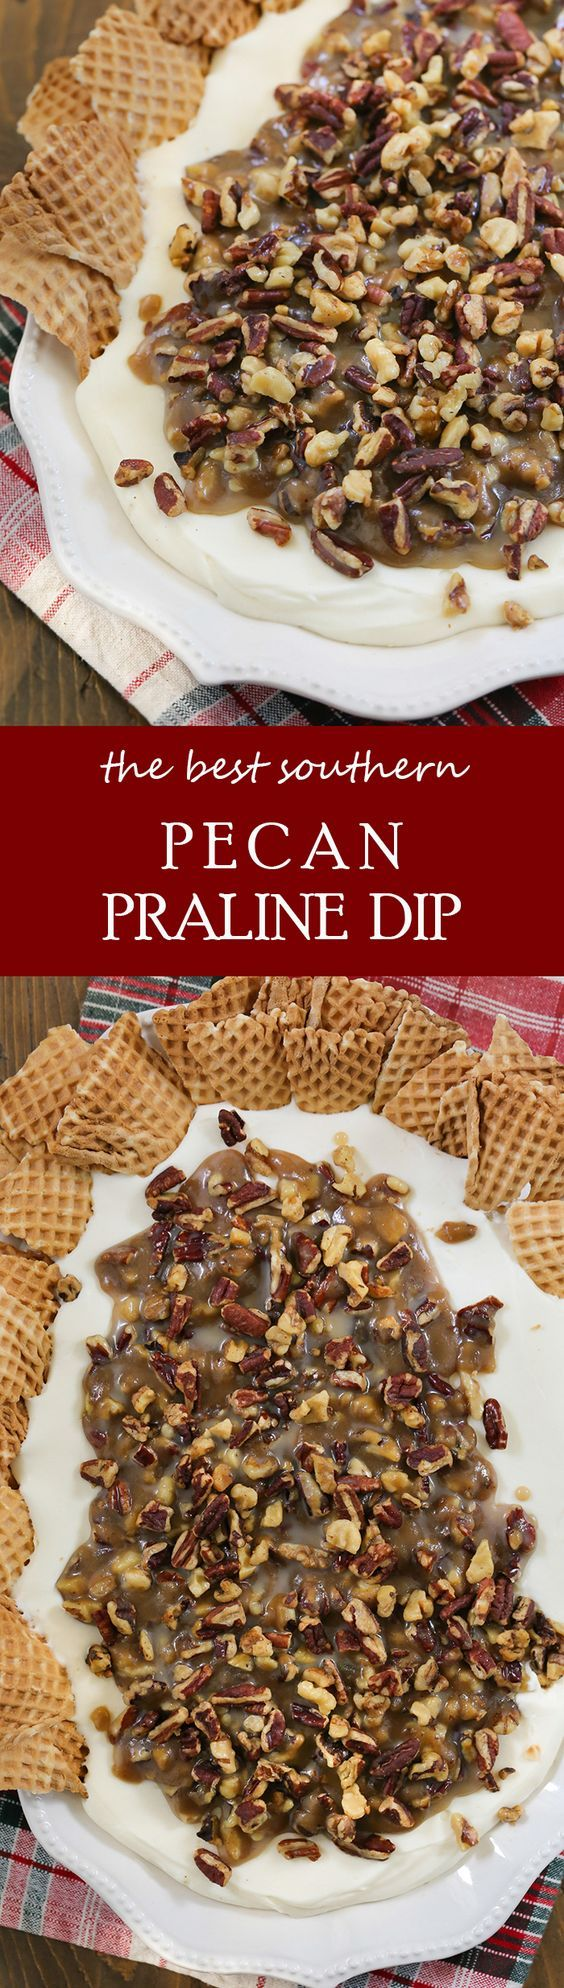 The best southern Pecan Praline Dip! Serve this for a fall dessert your guests will love!